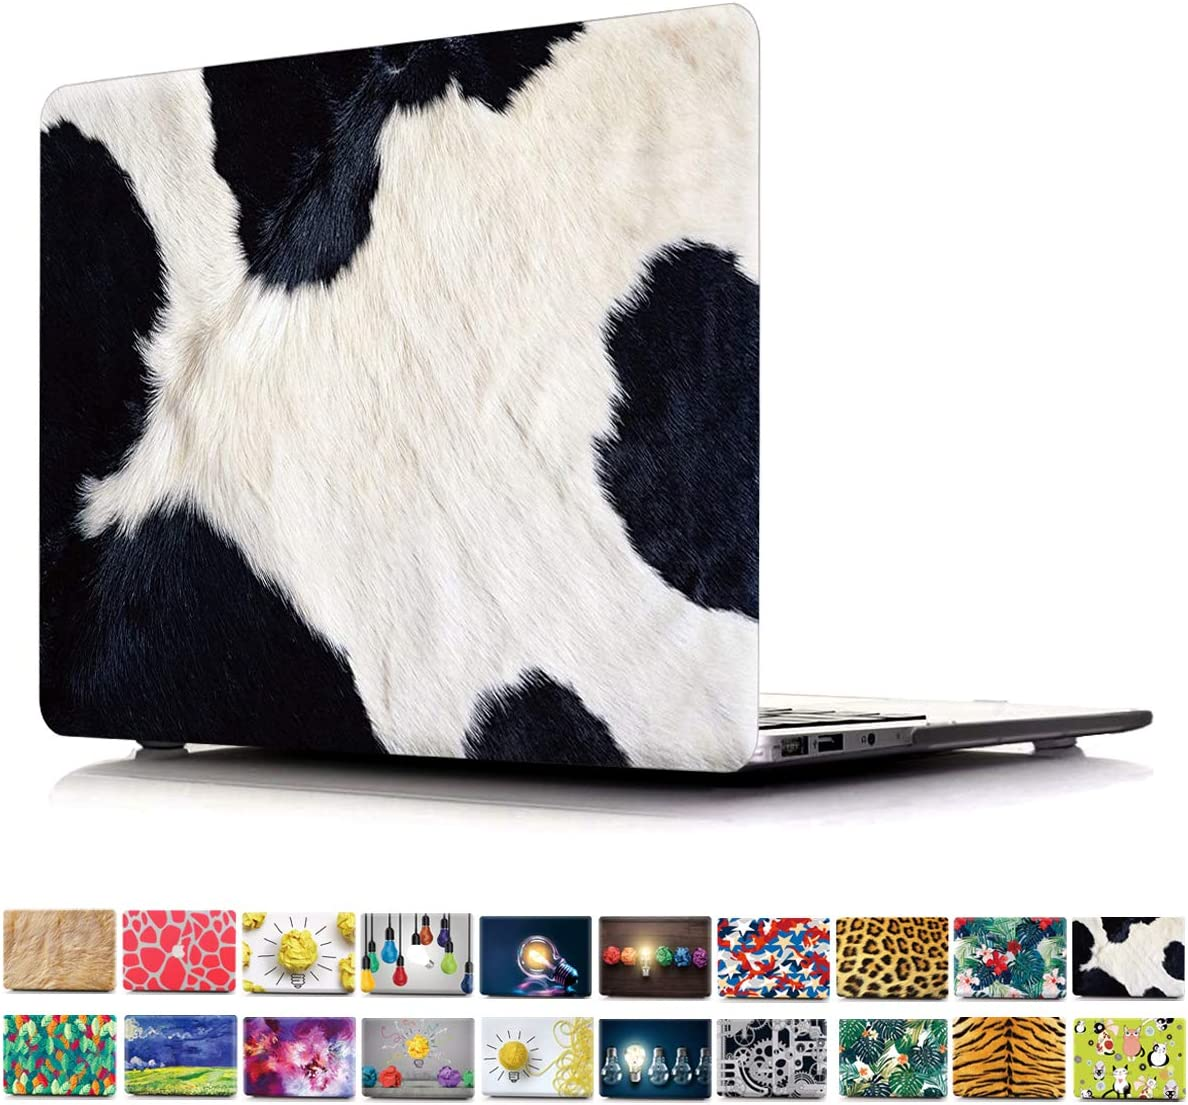 """2016/2017/2018 MacBook Pro 13 Case A1706/A1708/A1989 PapyHall Newest 2 in 1 Color Printing Plastic Shell Cover for MacBook Pro 13"""" with/Without Touch Bar Model: A1706/A1708/A1989 Cow Grain"""